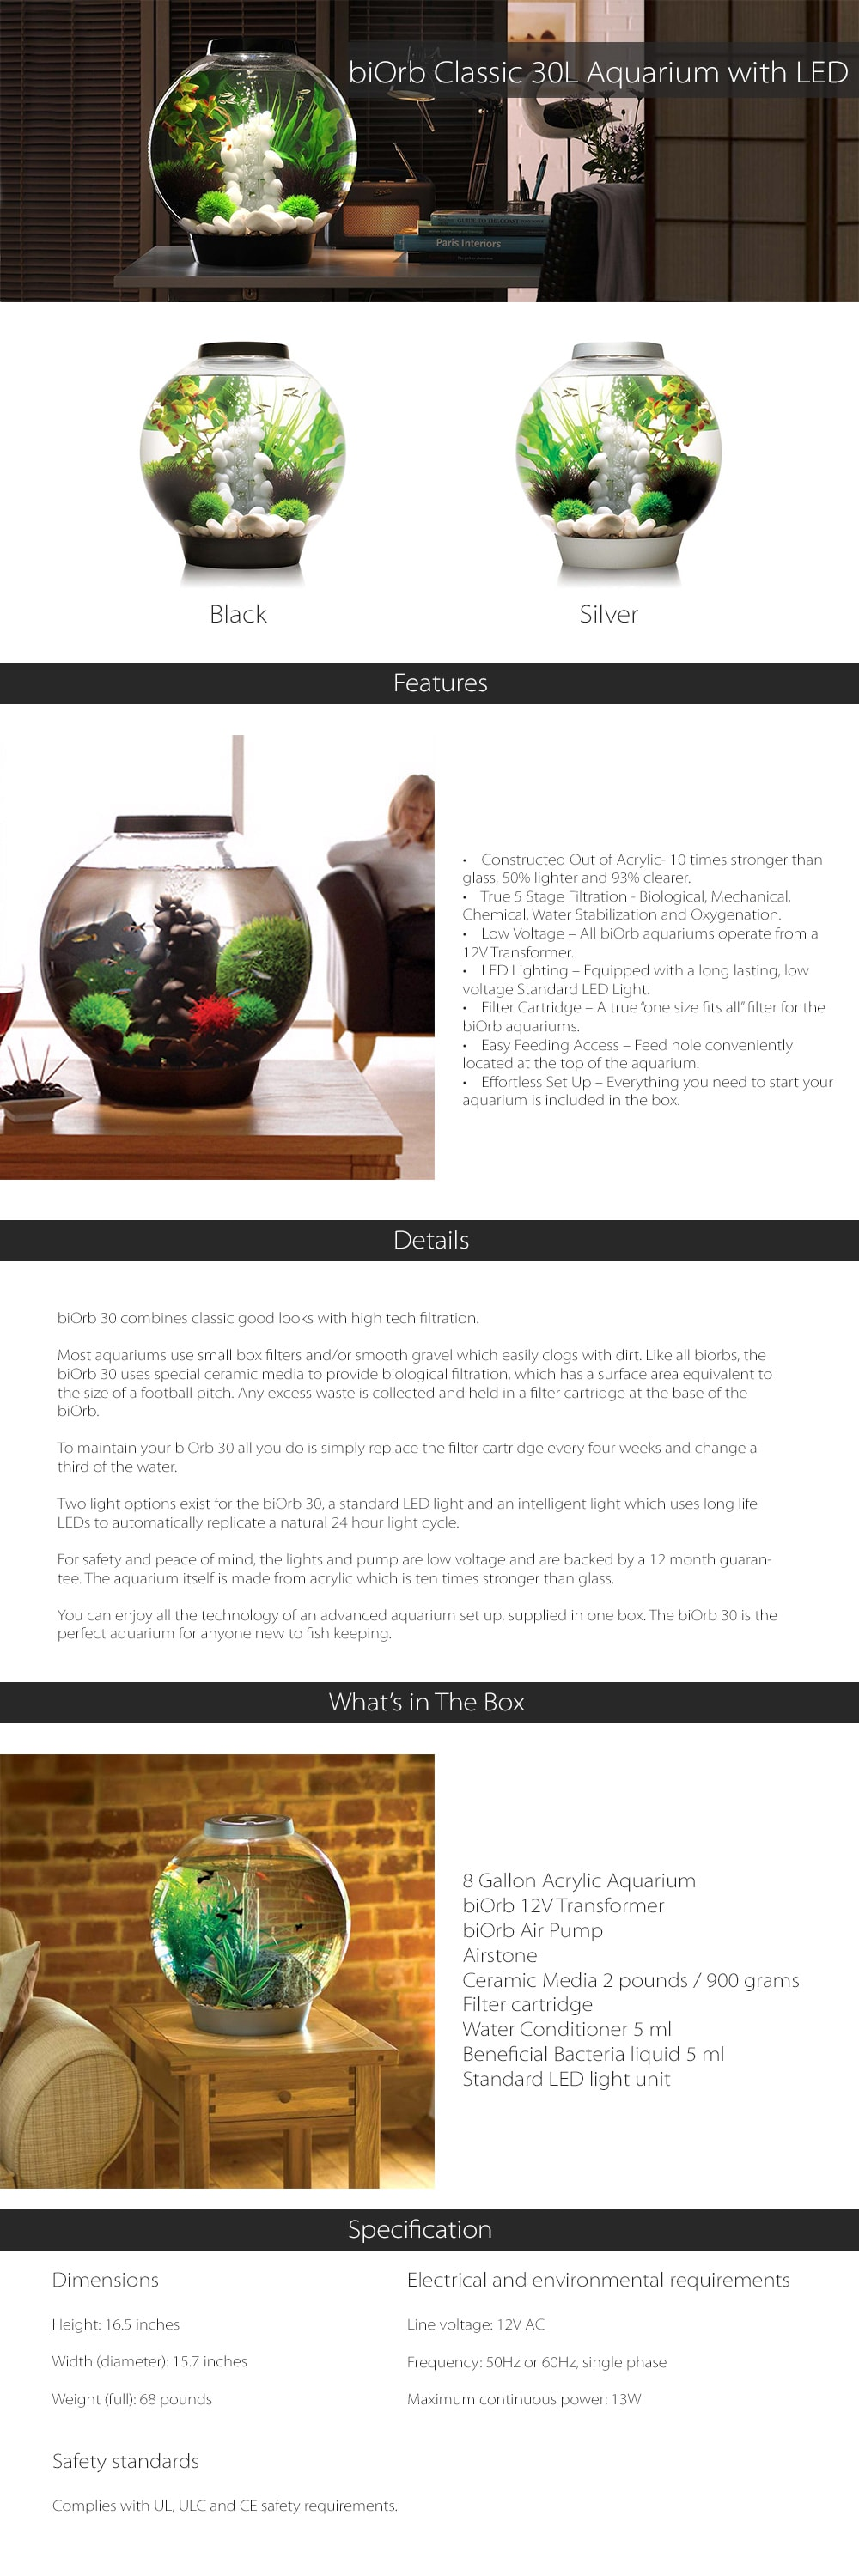 BiOrb 30 A Healthy Home For Your Fish